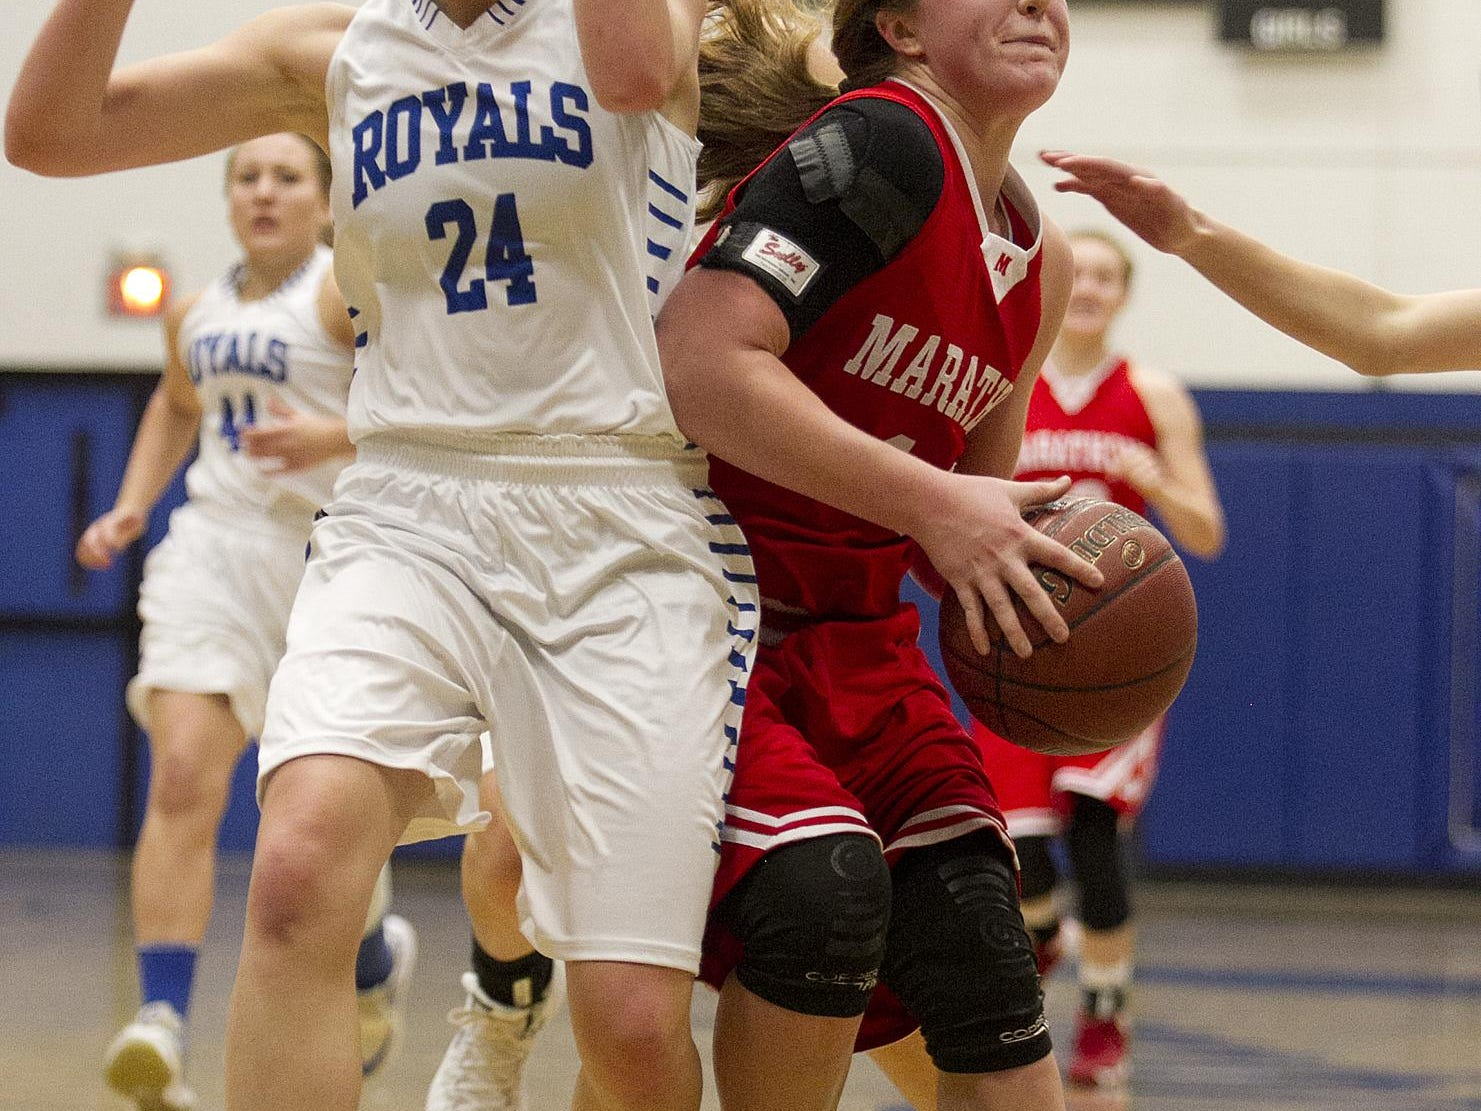 Marathon's Morgan Rachu, right, drives on a fast break against Assumption's Macie Zurfluh during the first half of the Marawood Conference girls basketball game Tuesday at Assumption High School in Wisconsin Rapids.